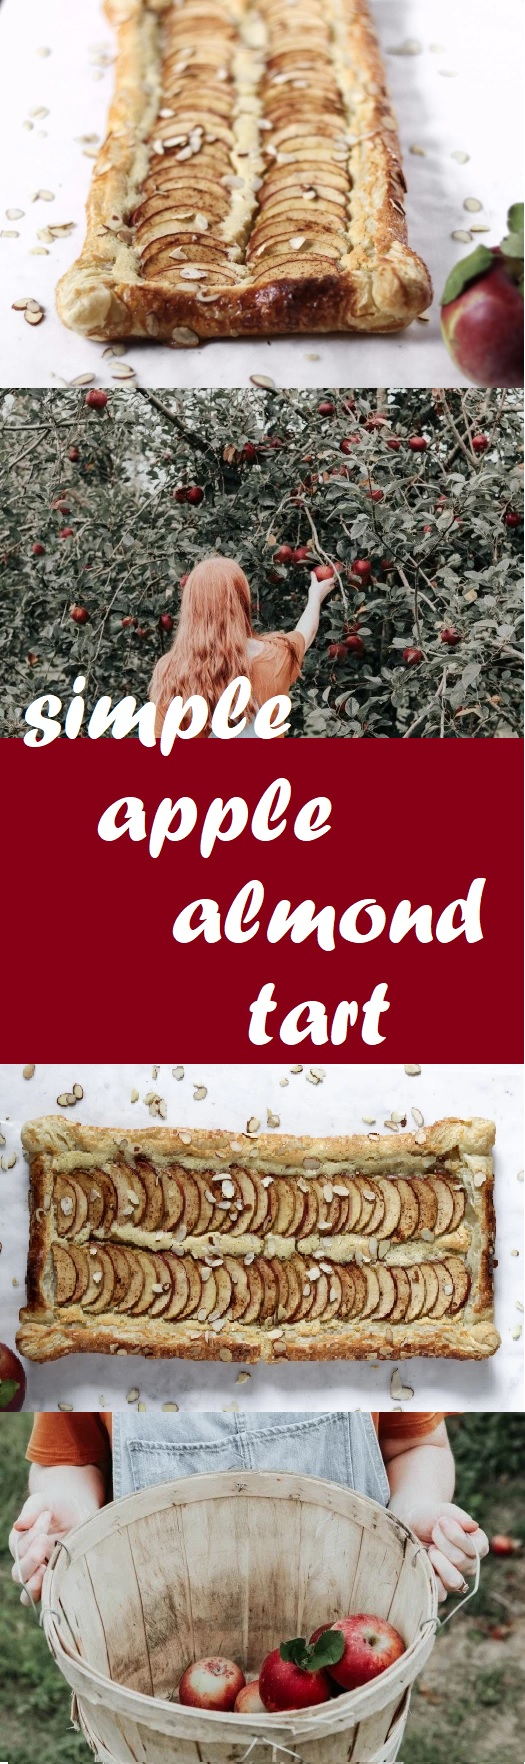 simple apple almond tart apple picking jones orchard tennessee puff pastry